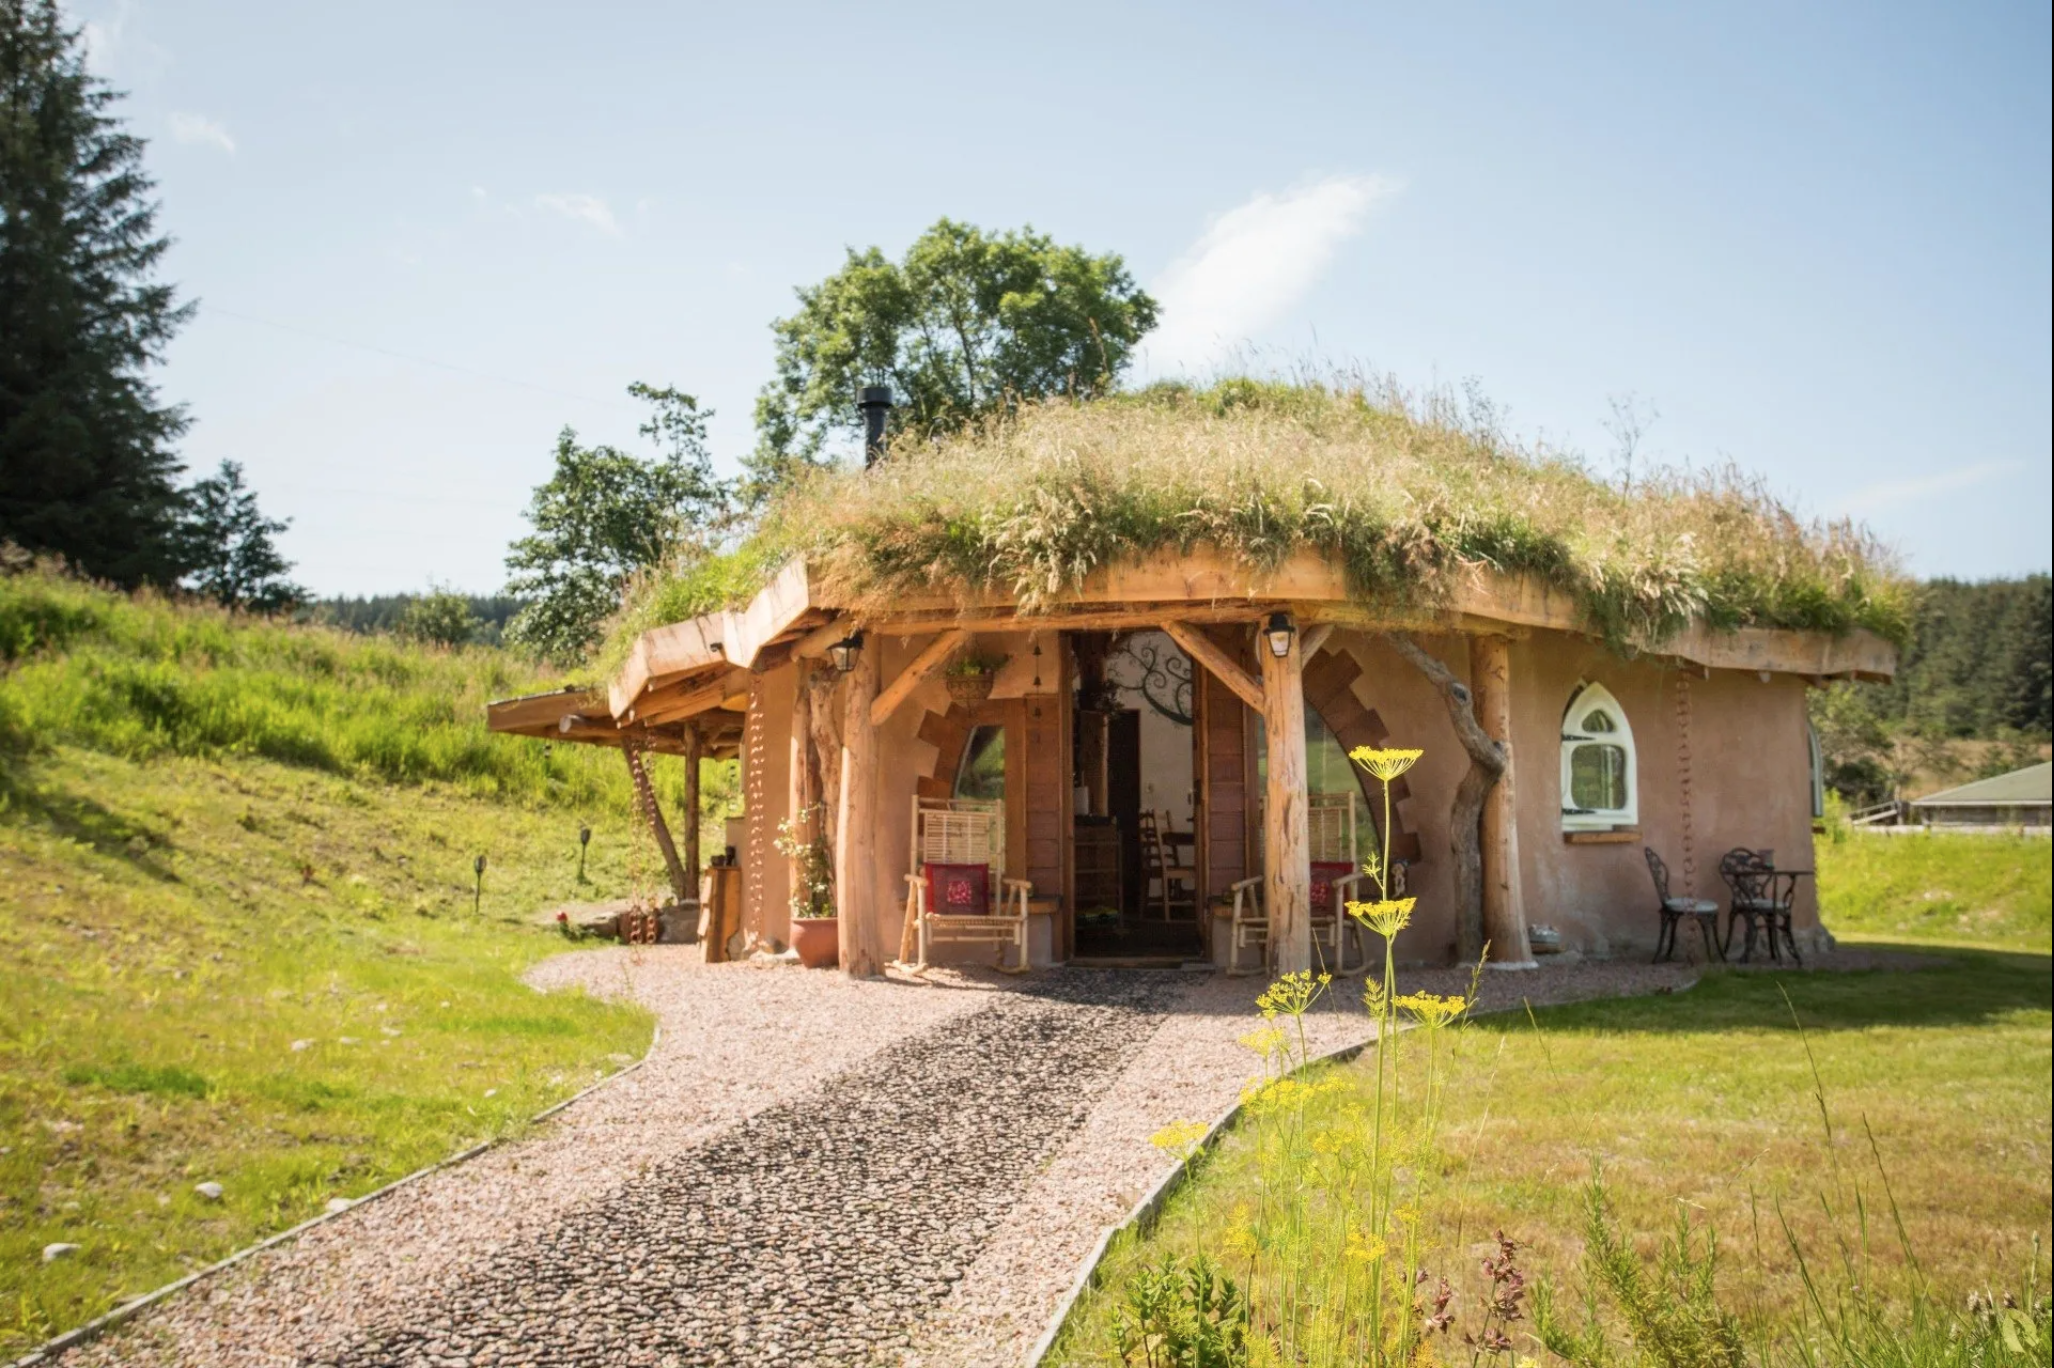 Round wooden cabin with turf roof